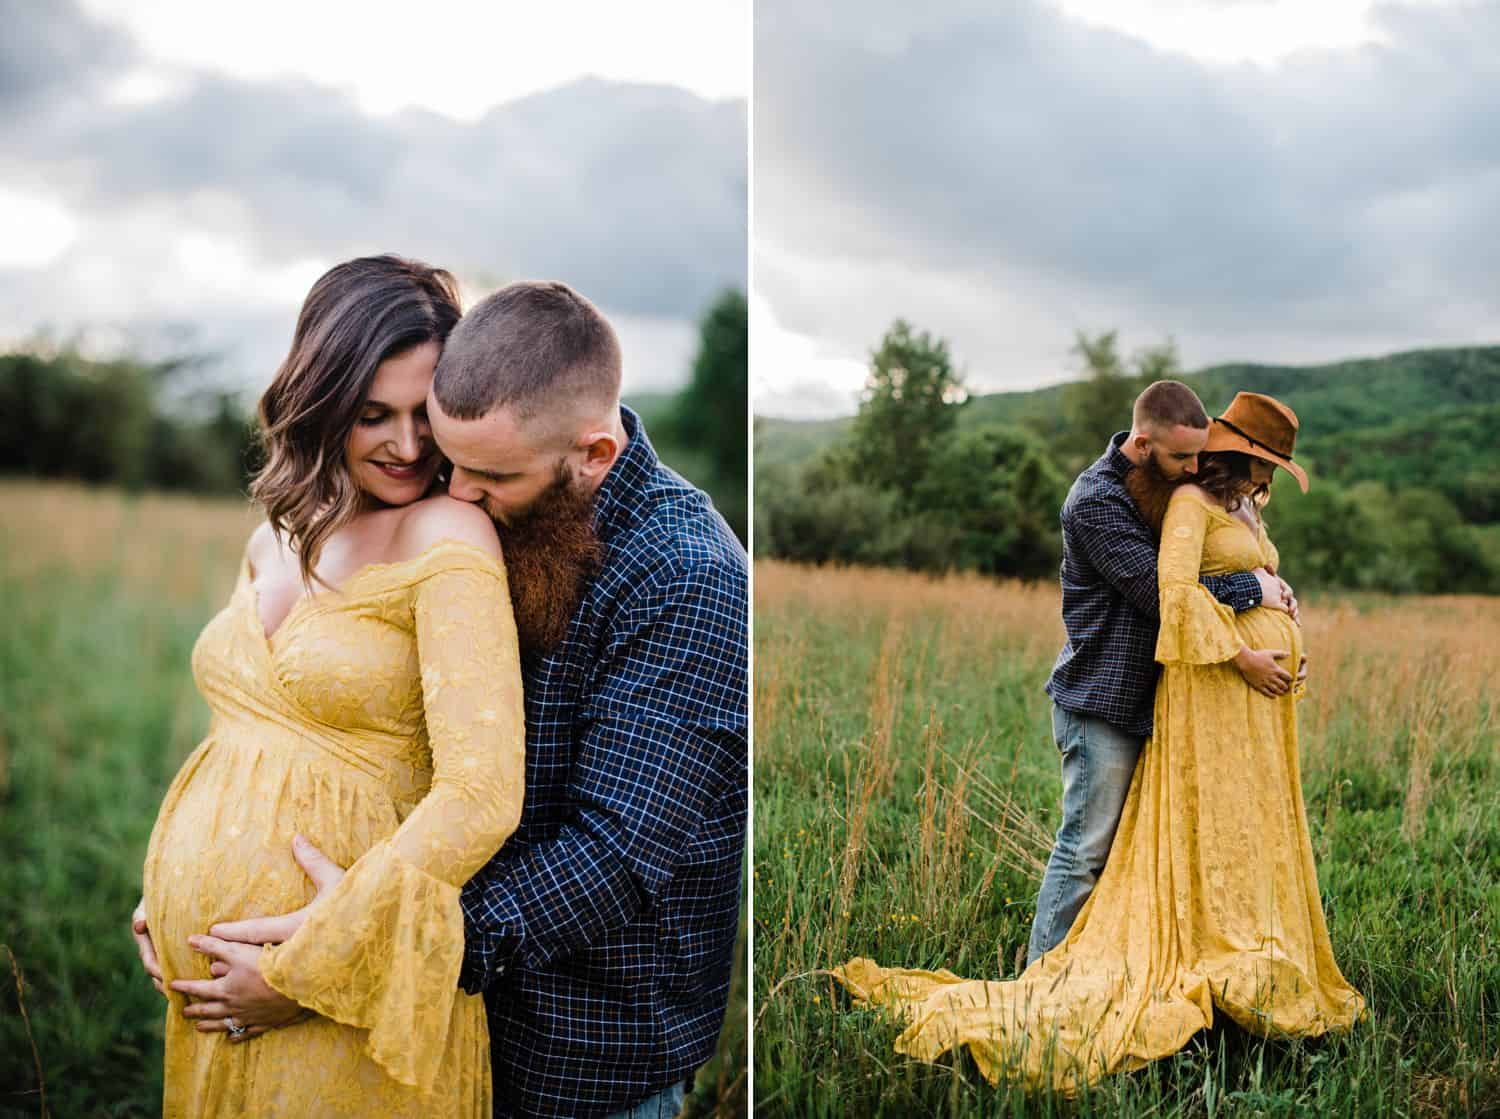 Maternity Poses: two side-by-side photographs of a pregnant woman in a yellow dress. In one she's standing in front of her husband who cradles her belly and kisses her shoulder. In the other, she's wearing a hat as her husband cuddles her from behind.